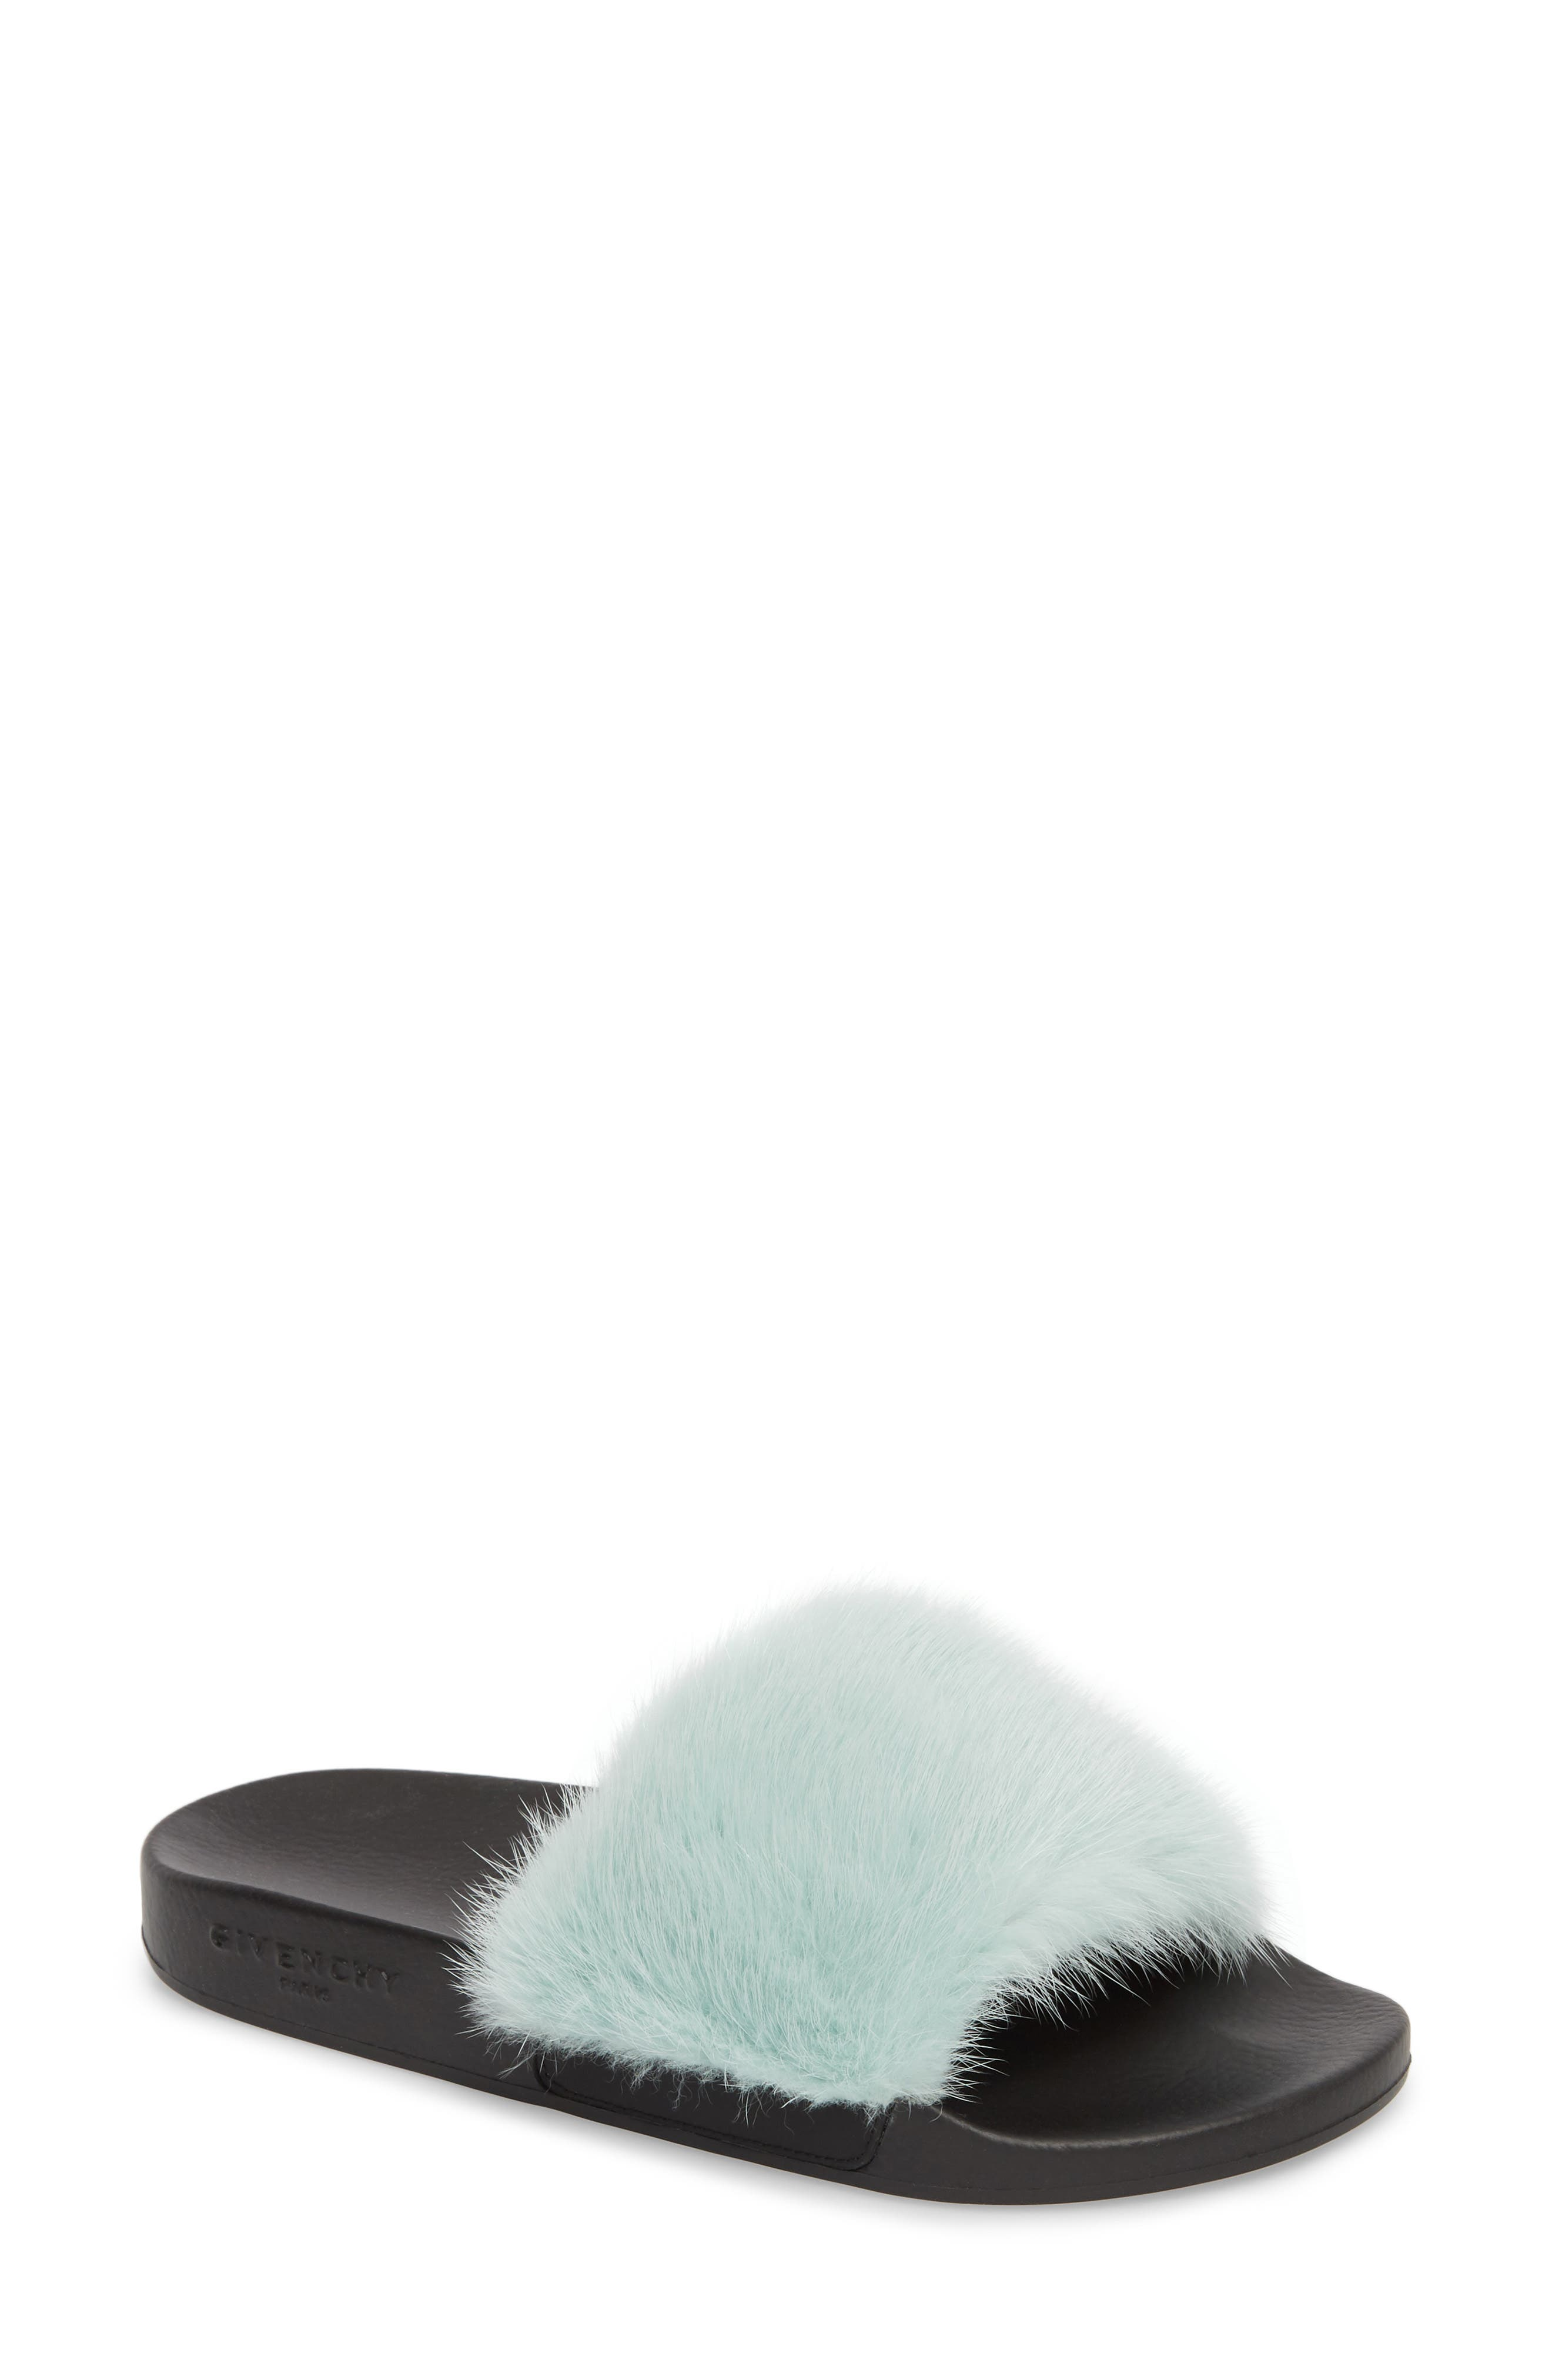 Genuine Mink Fur Slide Sandal,                         Main,                         color, Aqua